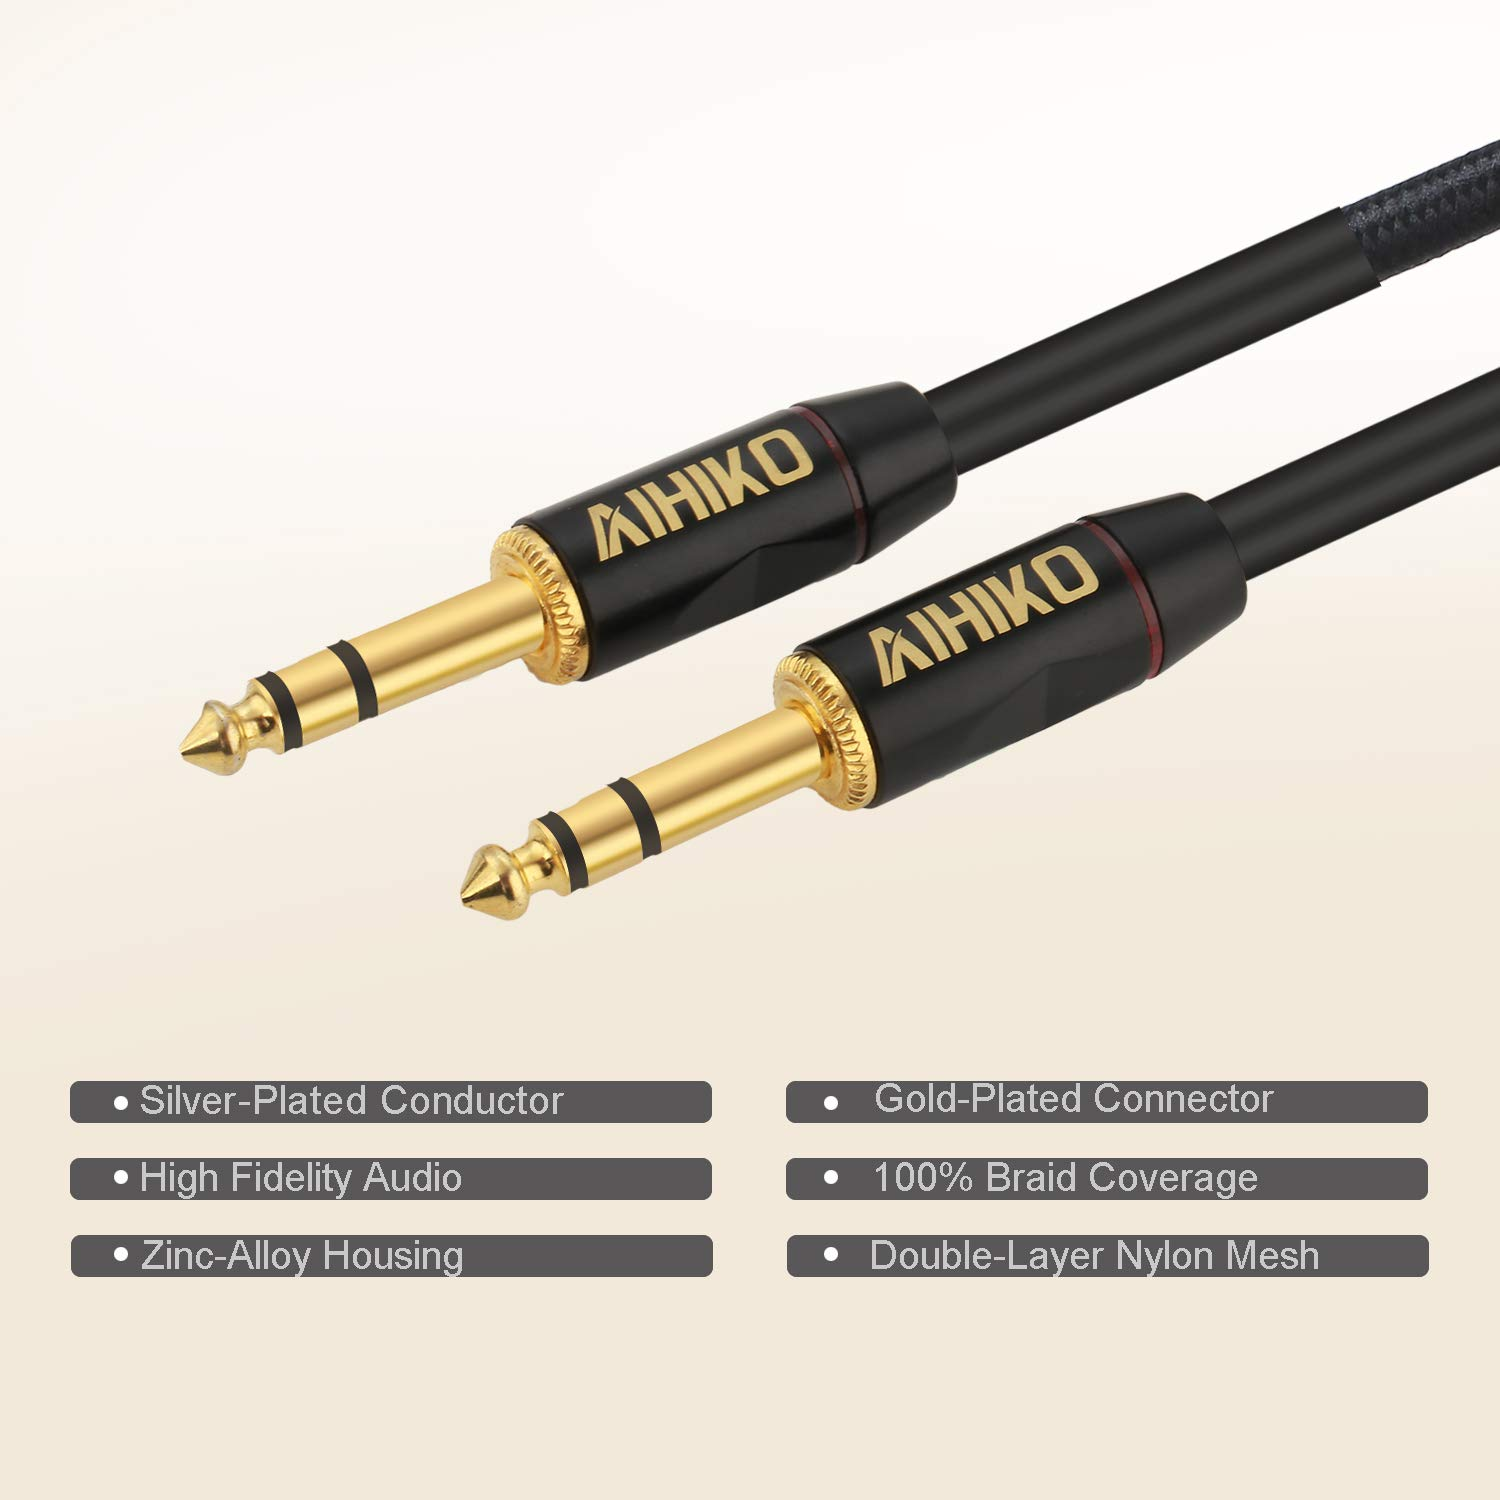 AIHIKO Guitar Cable 10Ft Nylon Braided Instrument AMP Cord 1/4 Straight Gold Plugs for Bass and Keyboard Pro Audio, Black